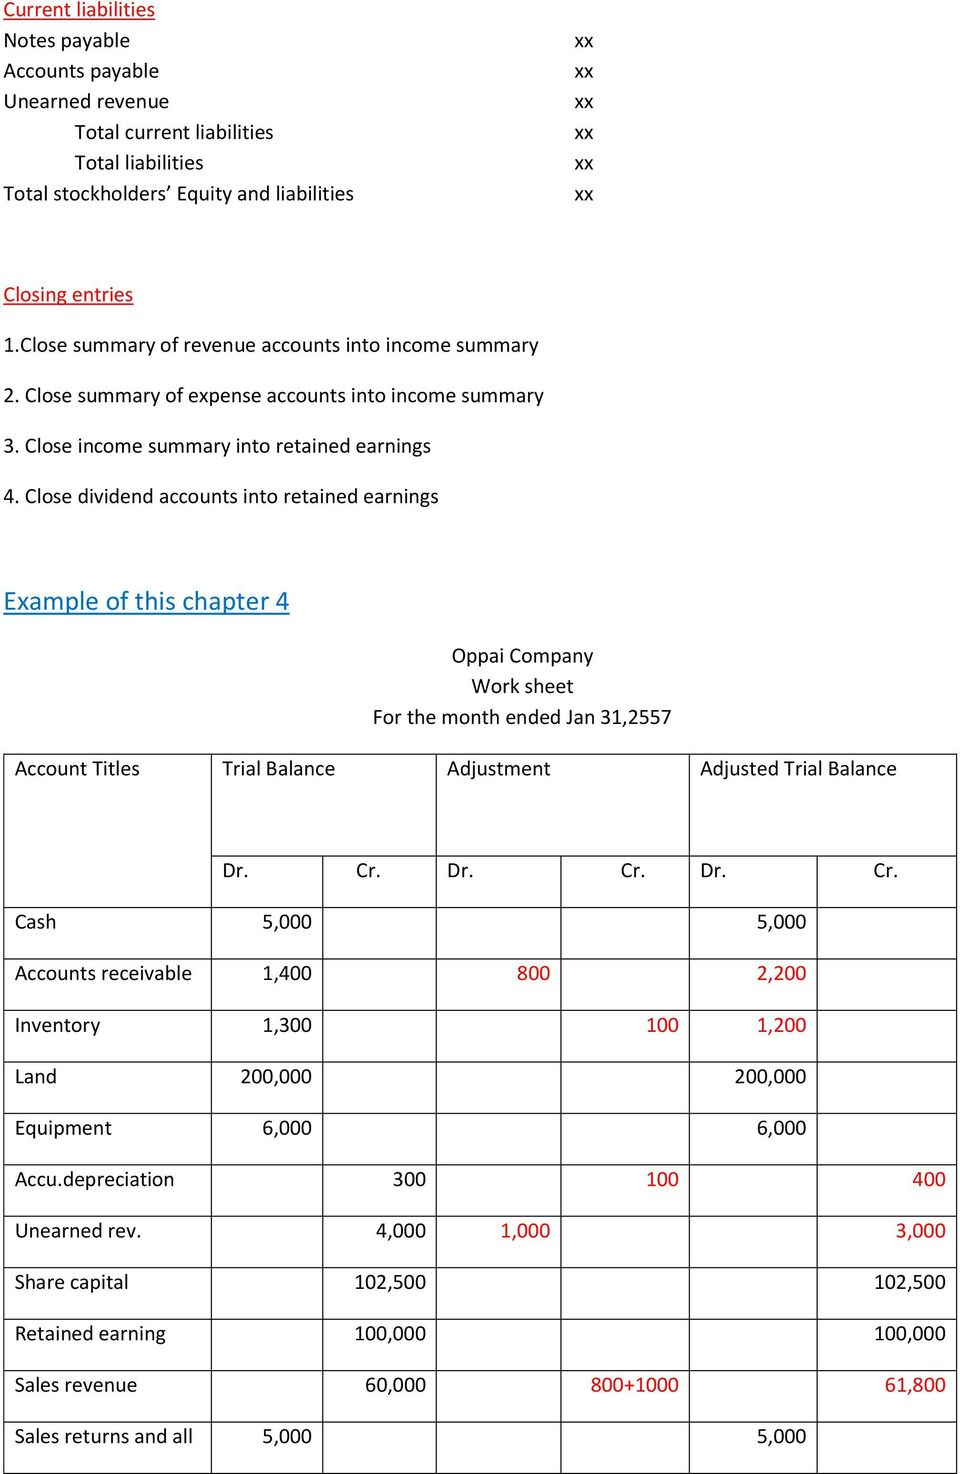 Close dividend accounts into retained earnings Example of this chapter 4 Oppai Company Work sheet For the month ended Jan 31,2557 Account Titles Trial Balance Adjustment Adjusted Trial Balance Dr. Cr.